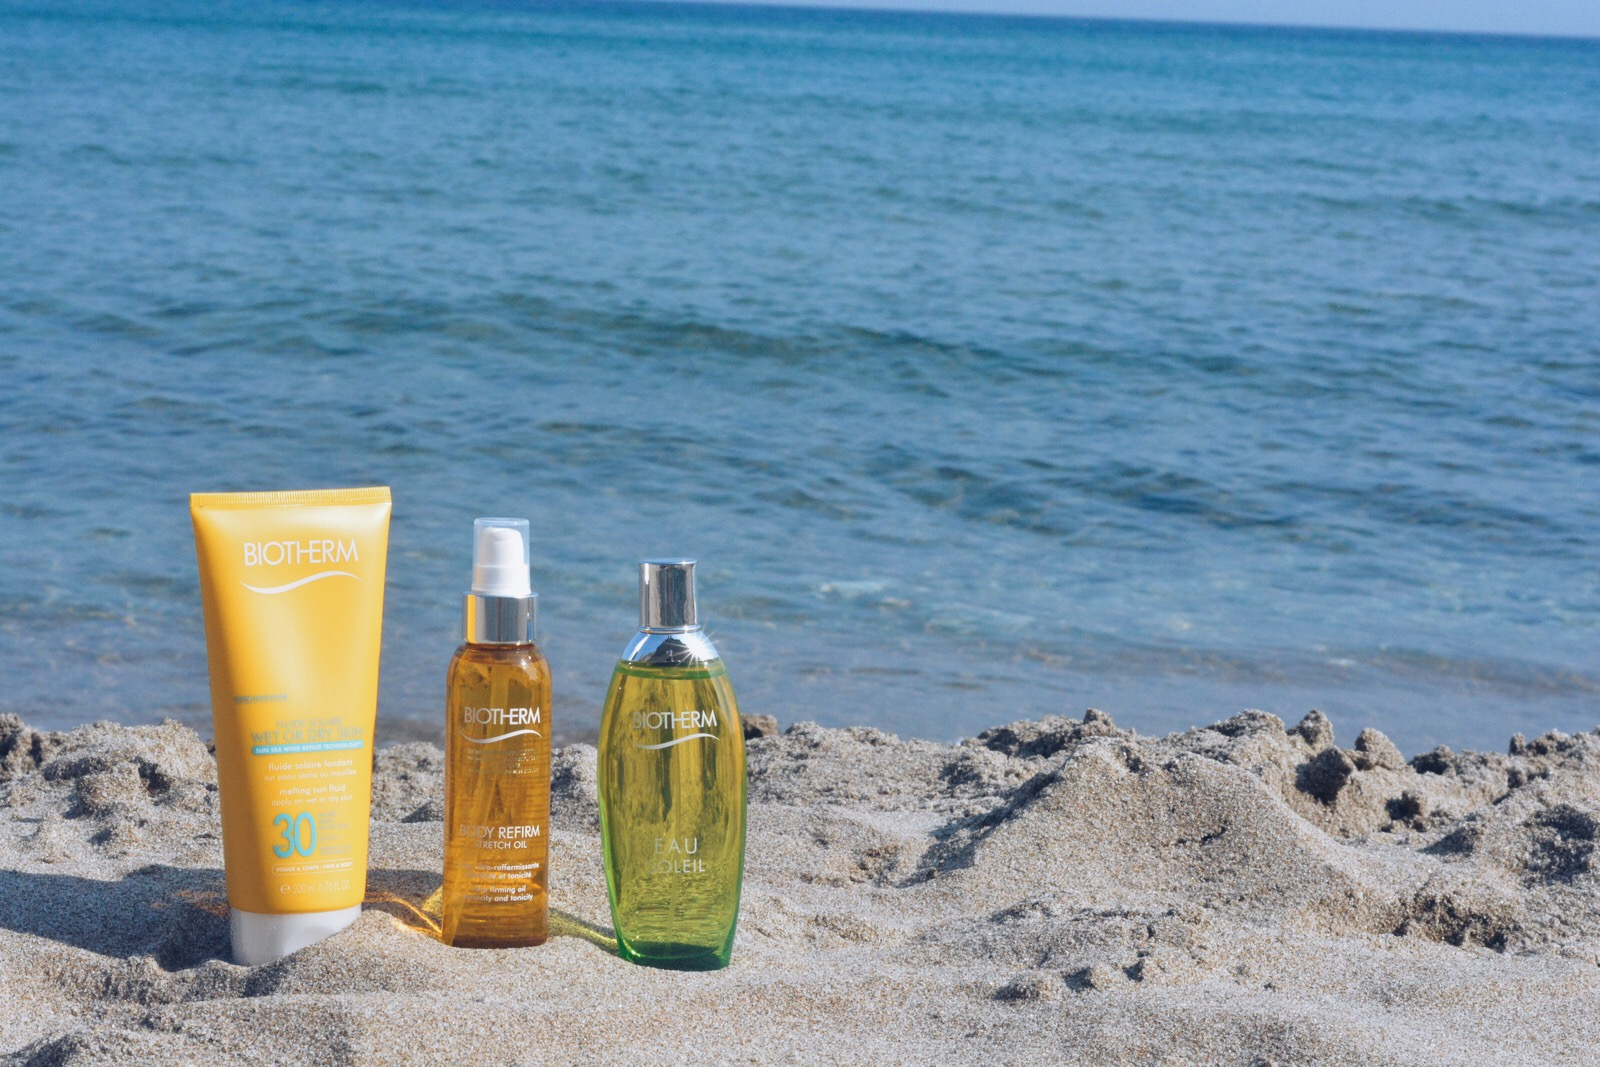 BIOTHERM UNLEASH YOUR SUMMER